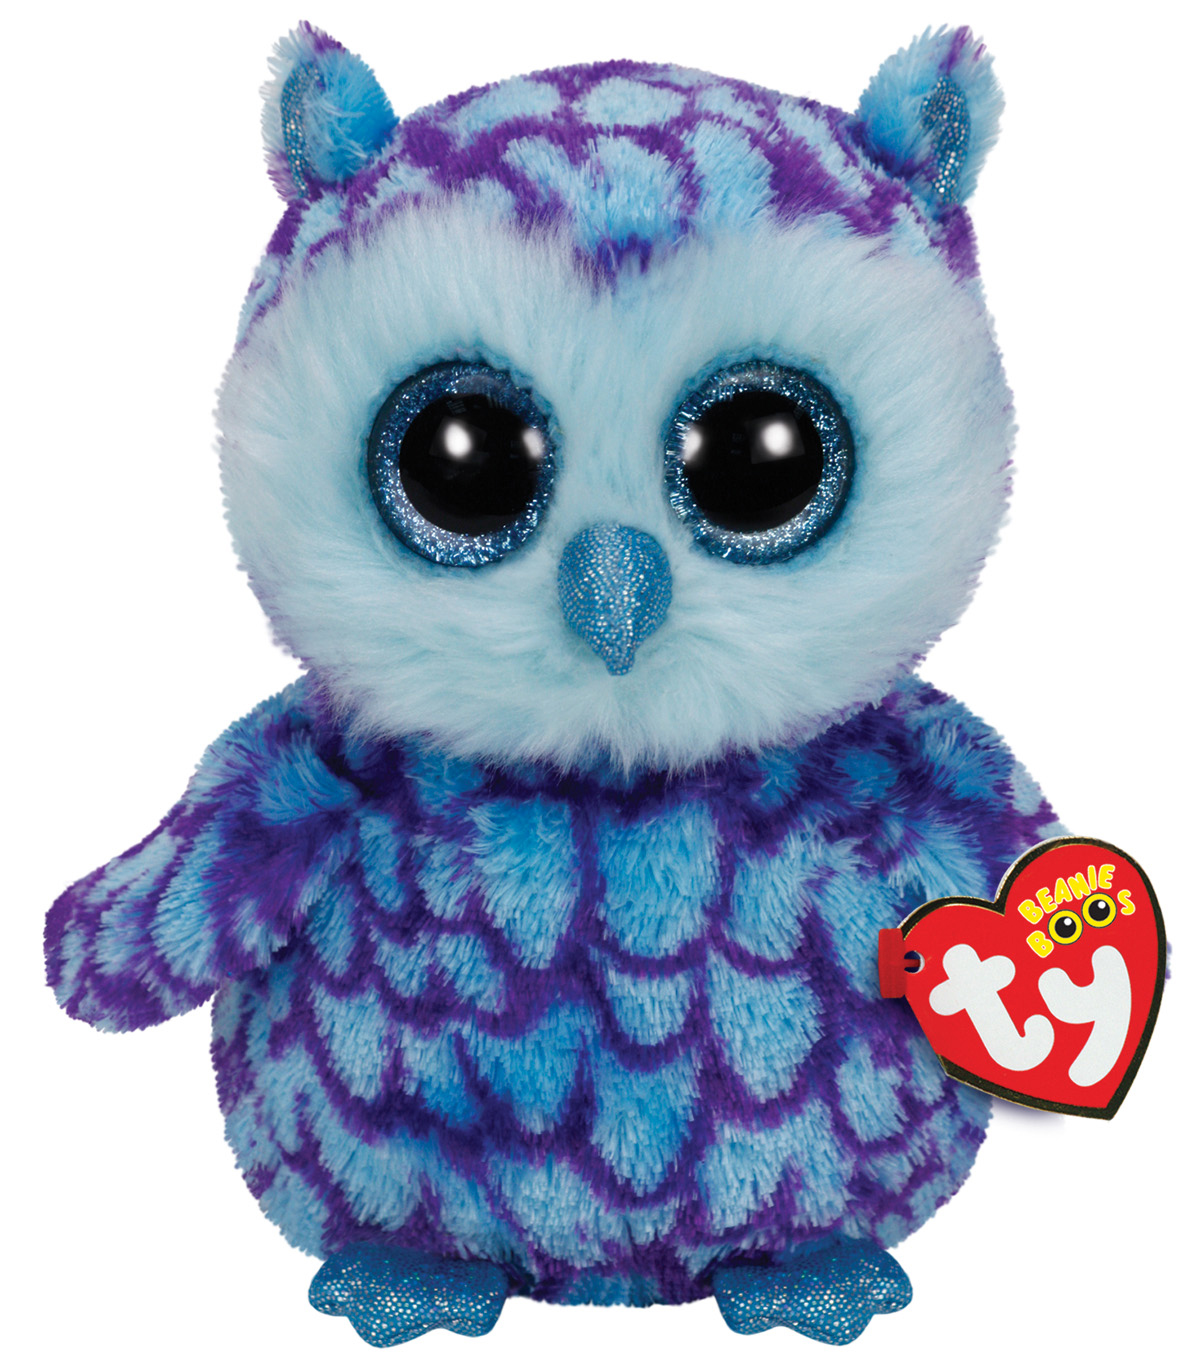 Ty Beanie Boos Oscar blue purple Owl Medium Plush